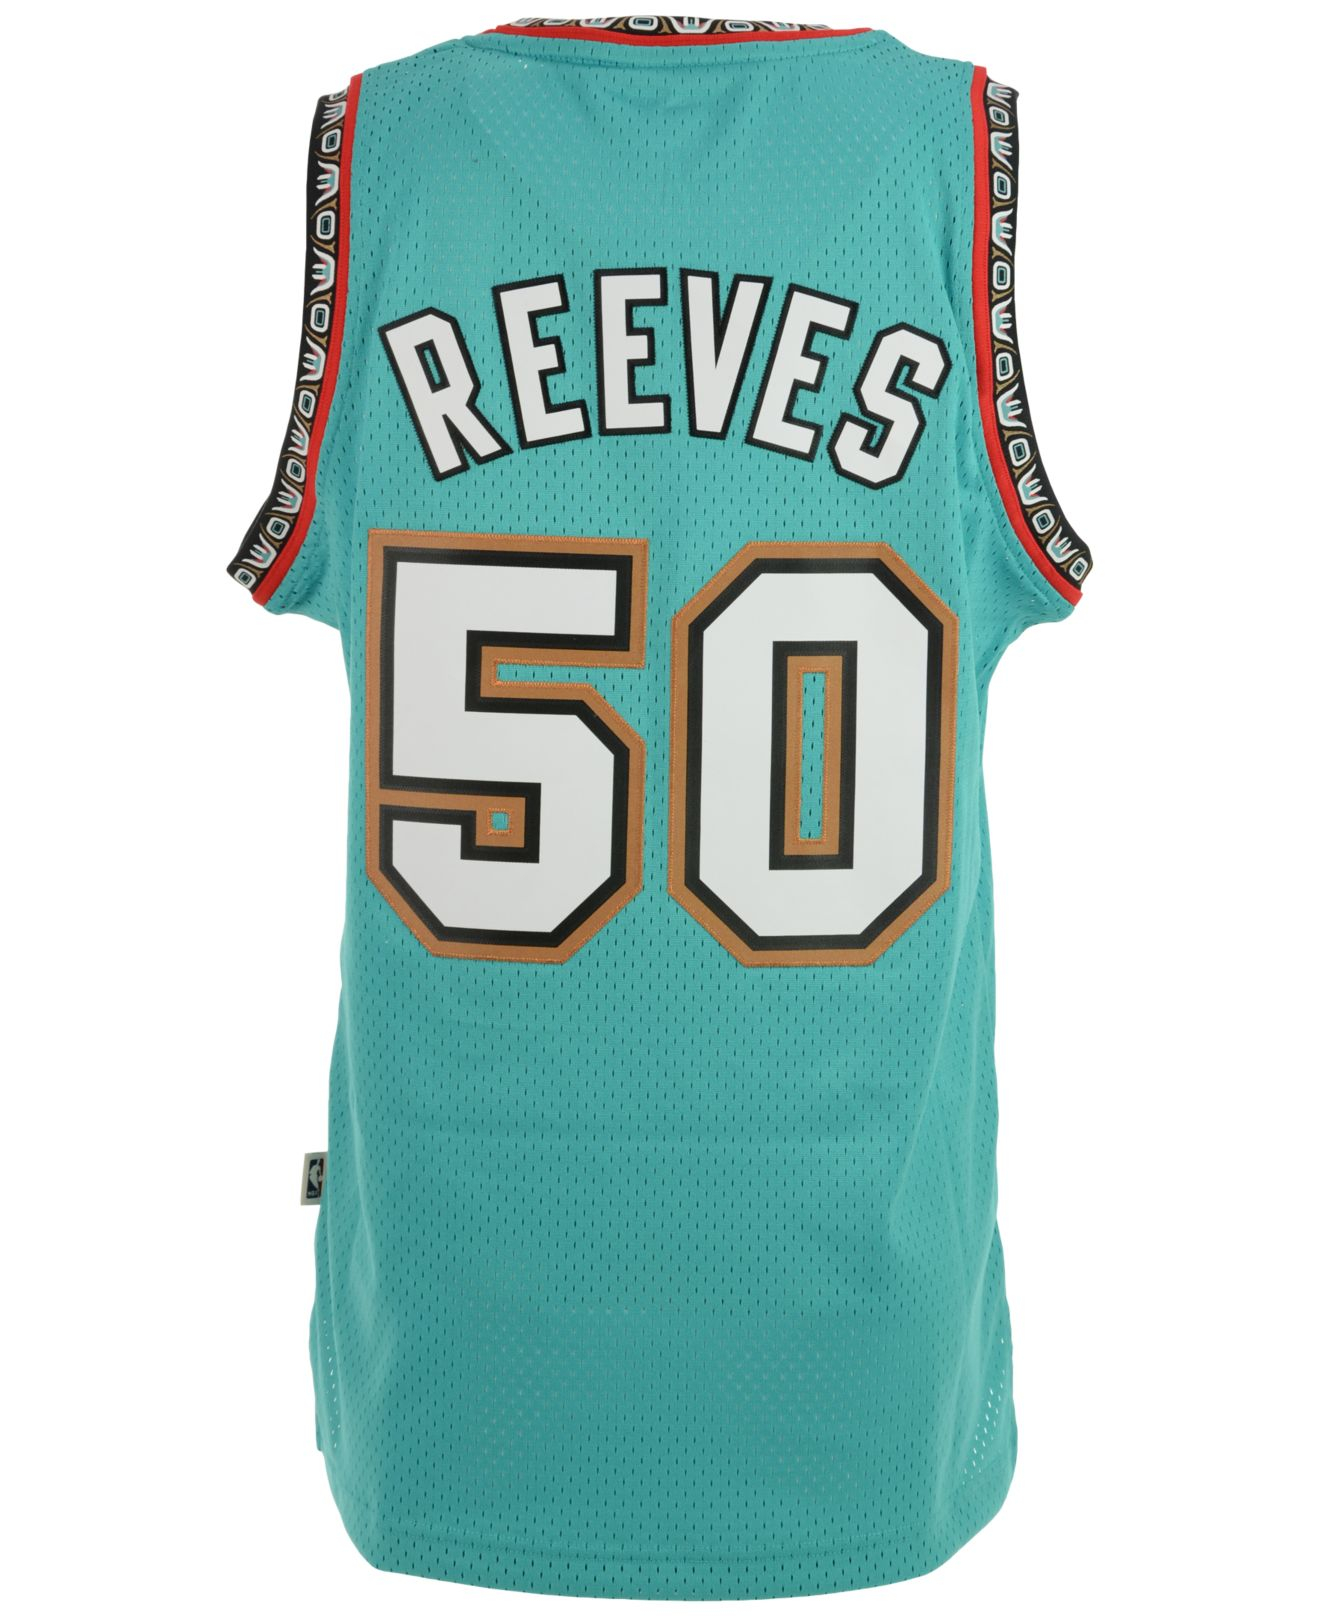 Lyst - adidas Bryant Reeves Vancouver Grizzlies Swingman Jersey in ... 0b259196d